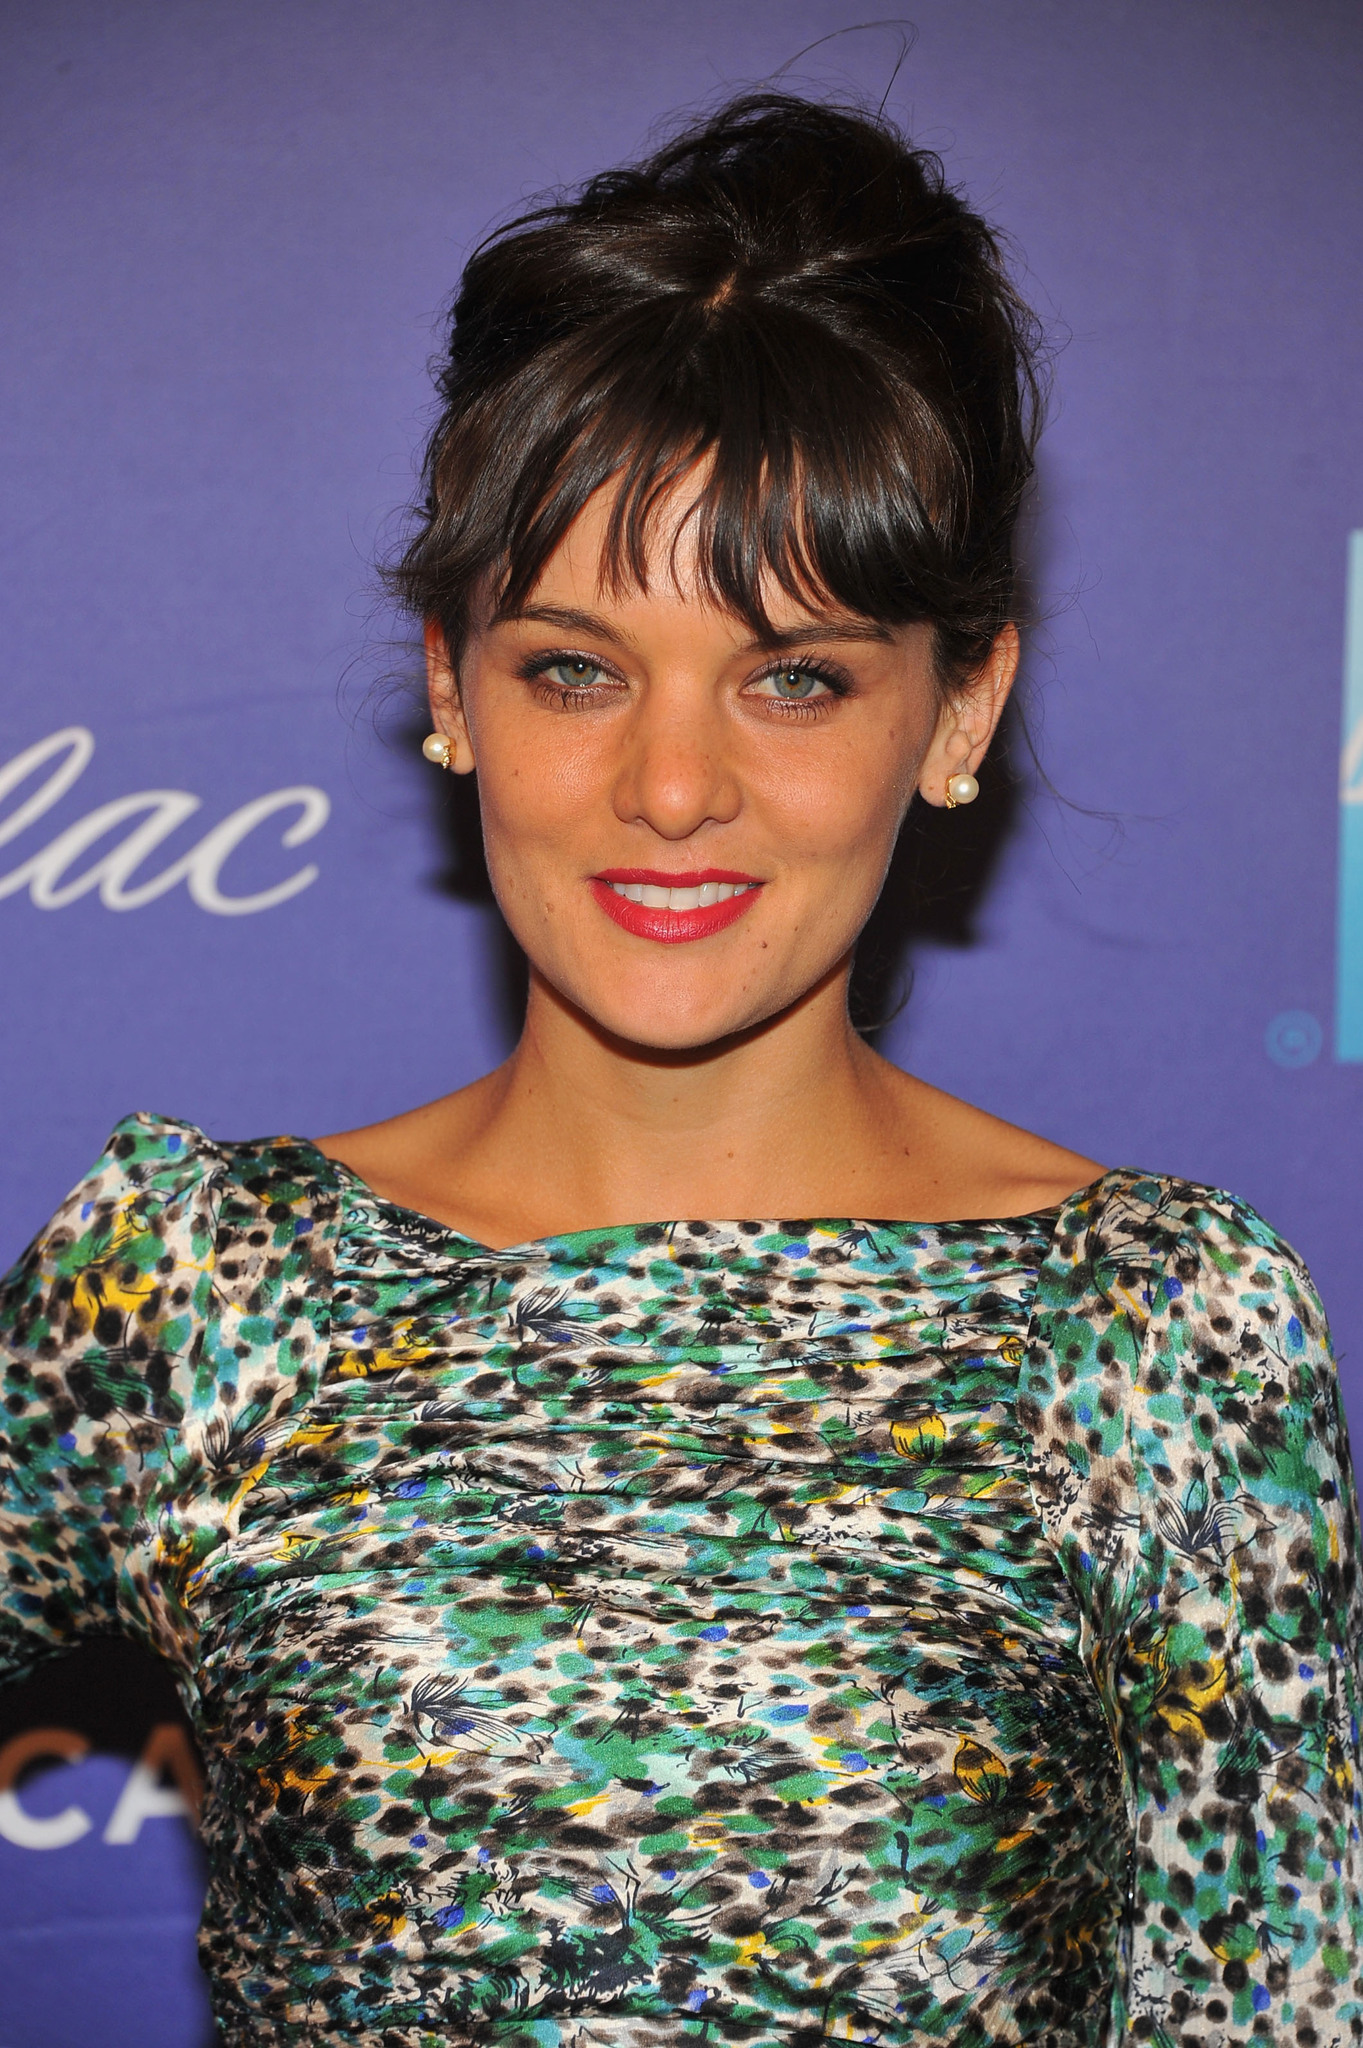 Frankie Shaw at an event for The Pretty One (2013)